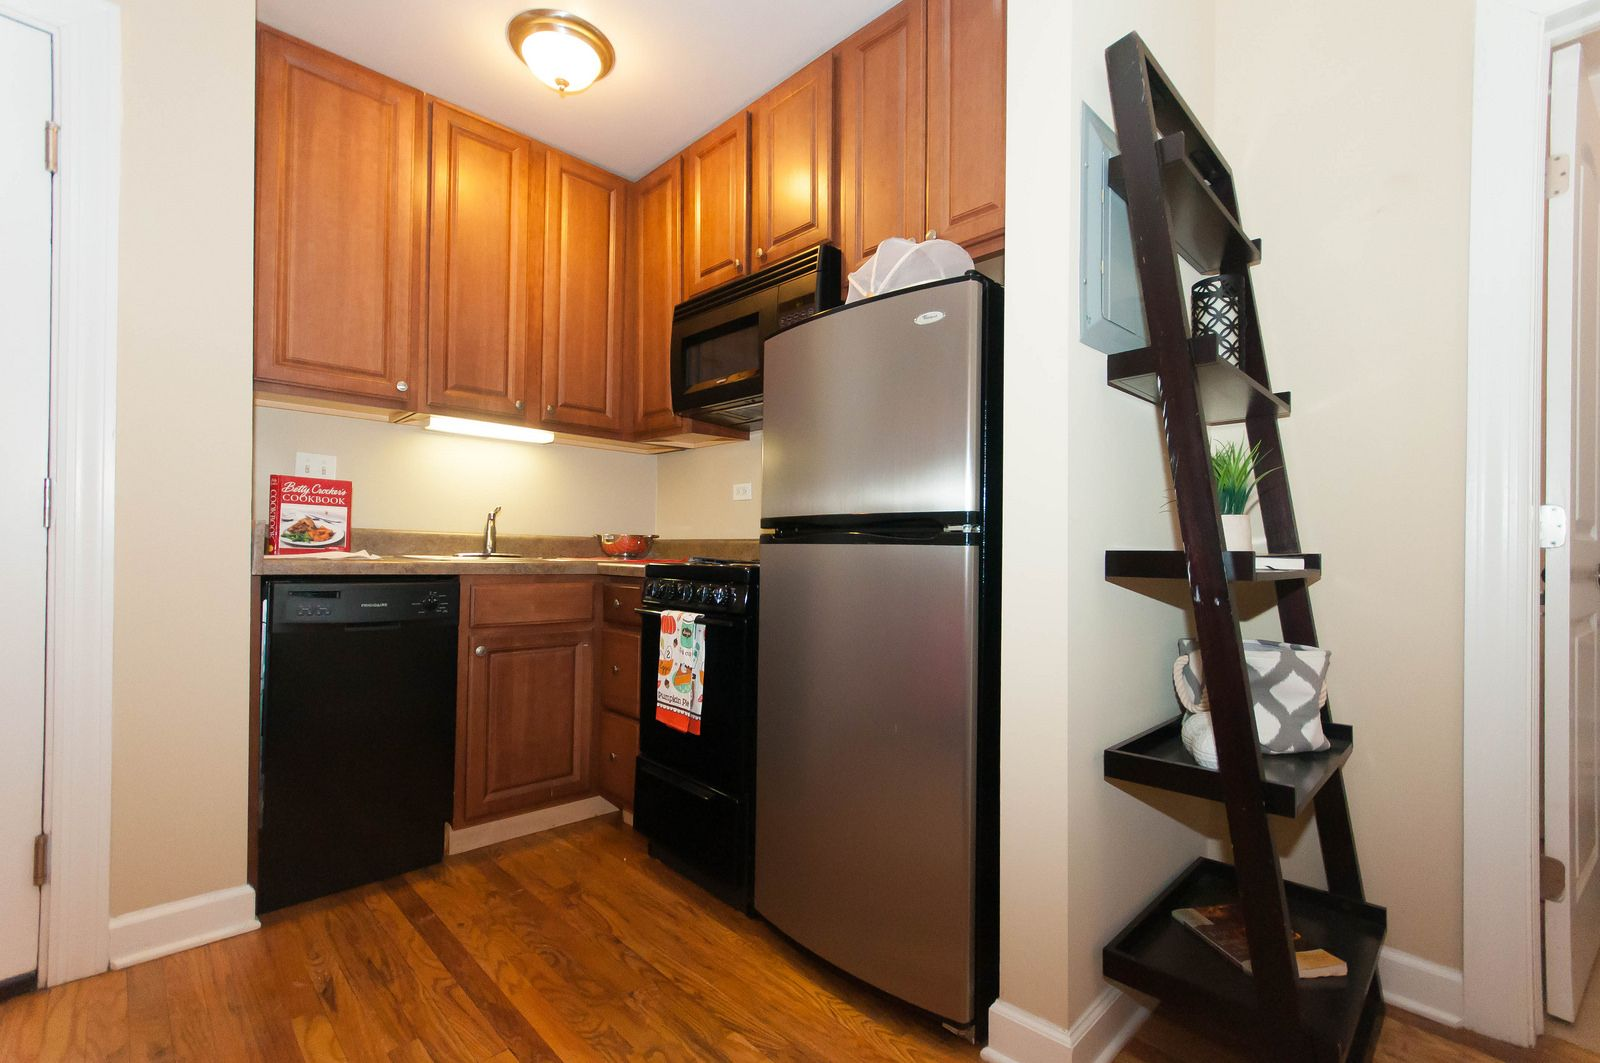 Ladder shelves are popular right now! #bjbproperties #chicagoapartments #southlincolnparkapartments